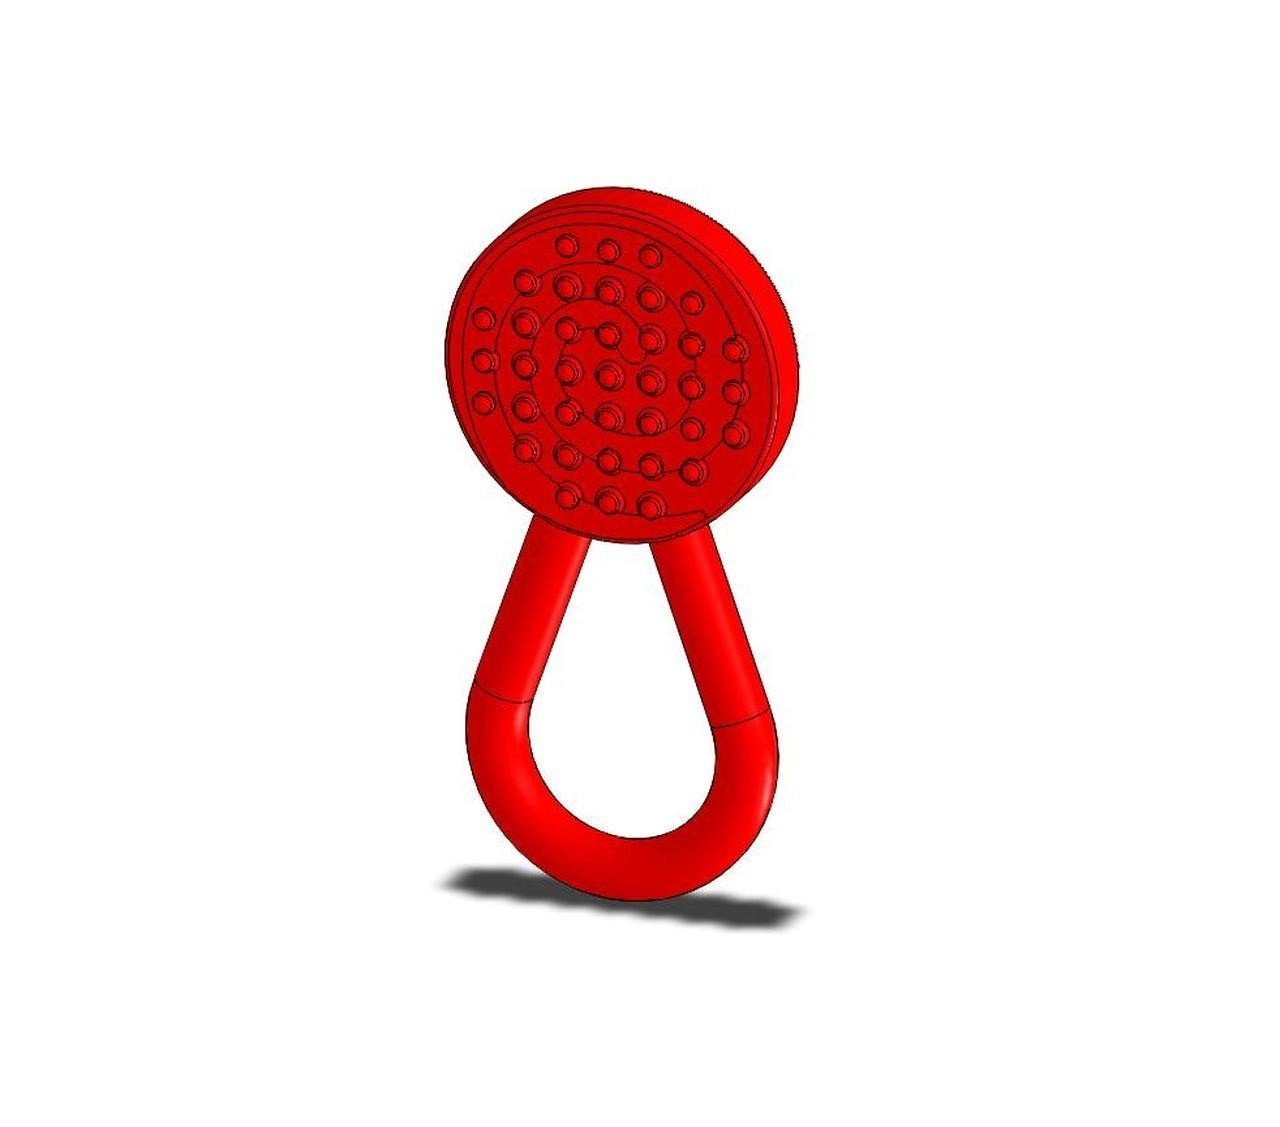 Red Chew Lolli Knobby Textured - Chew Stixx - Finally a fun Chew that children enjoy and are not embarrassed of. Offers multiple chewing surfaces for sensory seekers. PVC, Phthalate, and latex free material. FDA approved material.